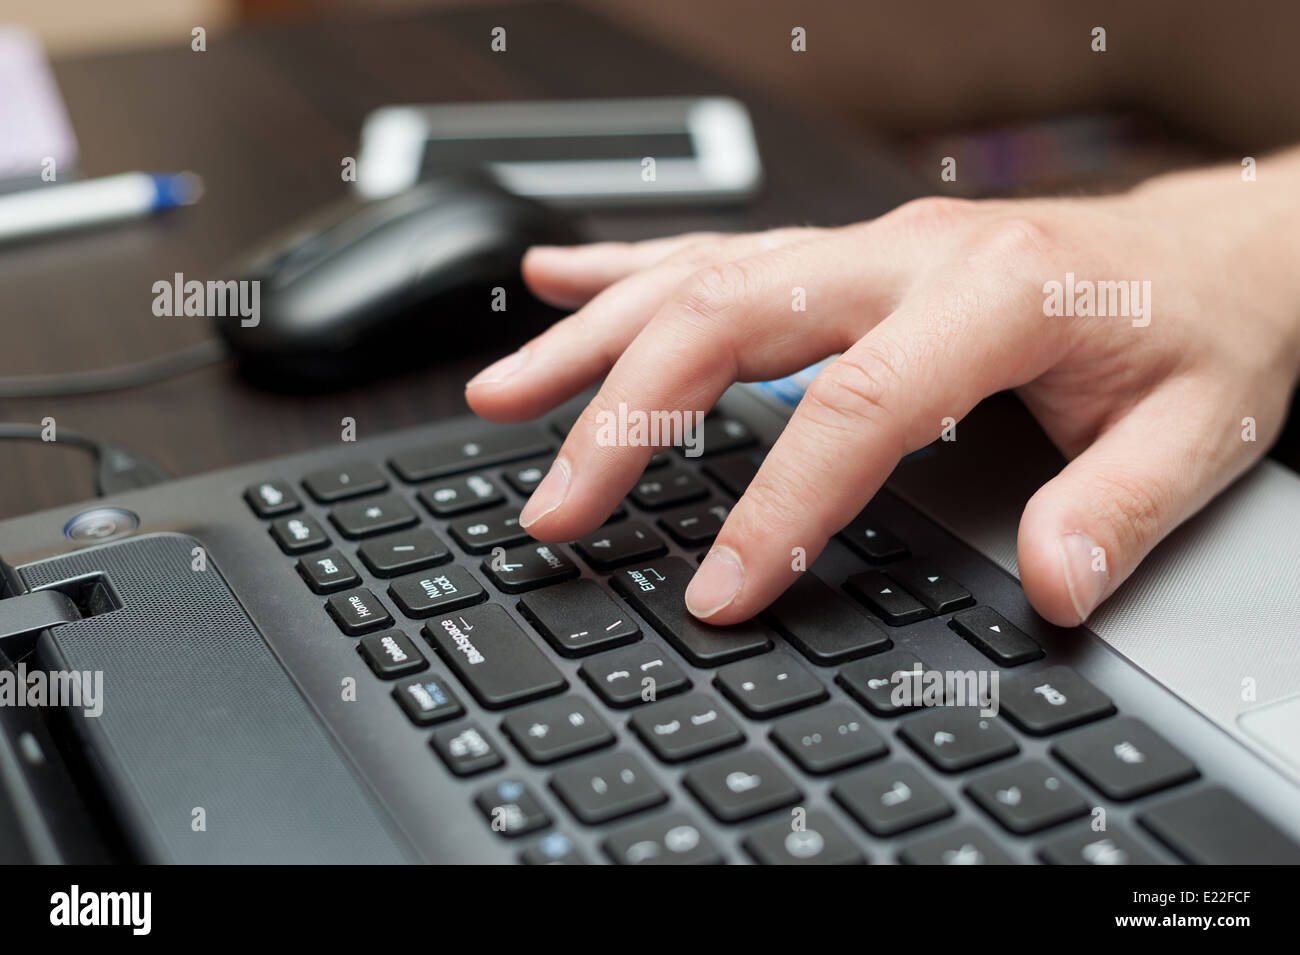 Hand Of Press Enter Key Stock Photos & Hand Of Press Enter